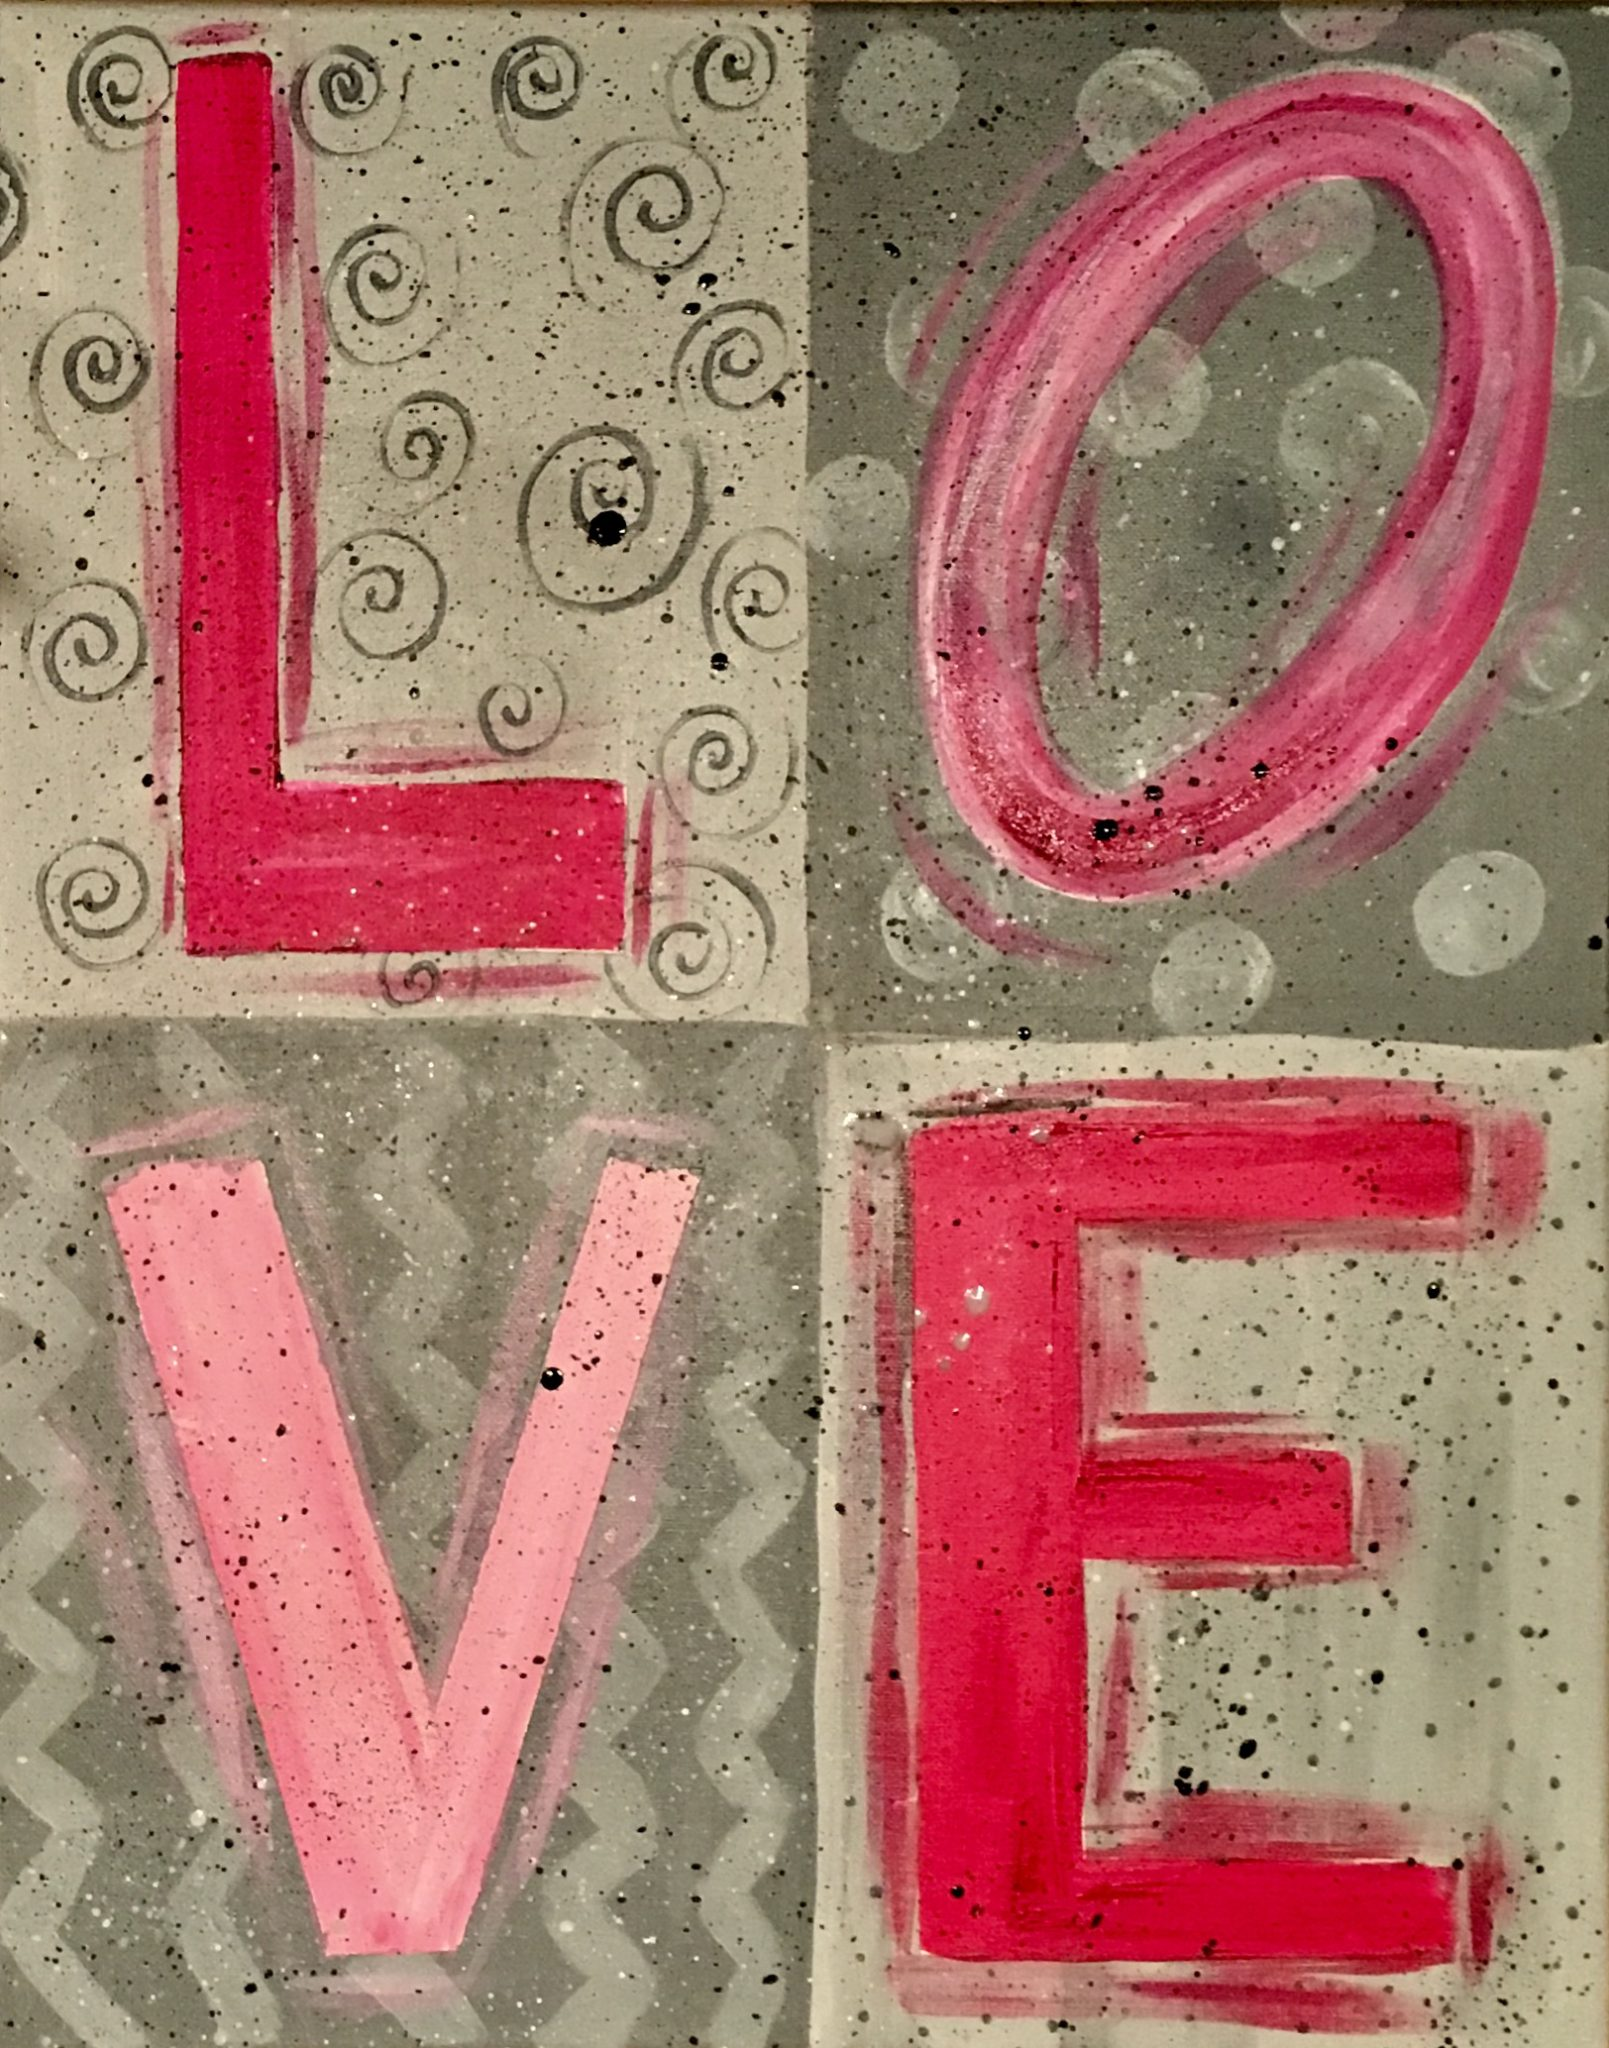 Step By Step Painting - Tracie's Acrylic Canvas Tutorials - photo#12